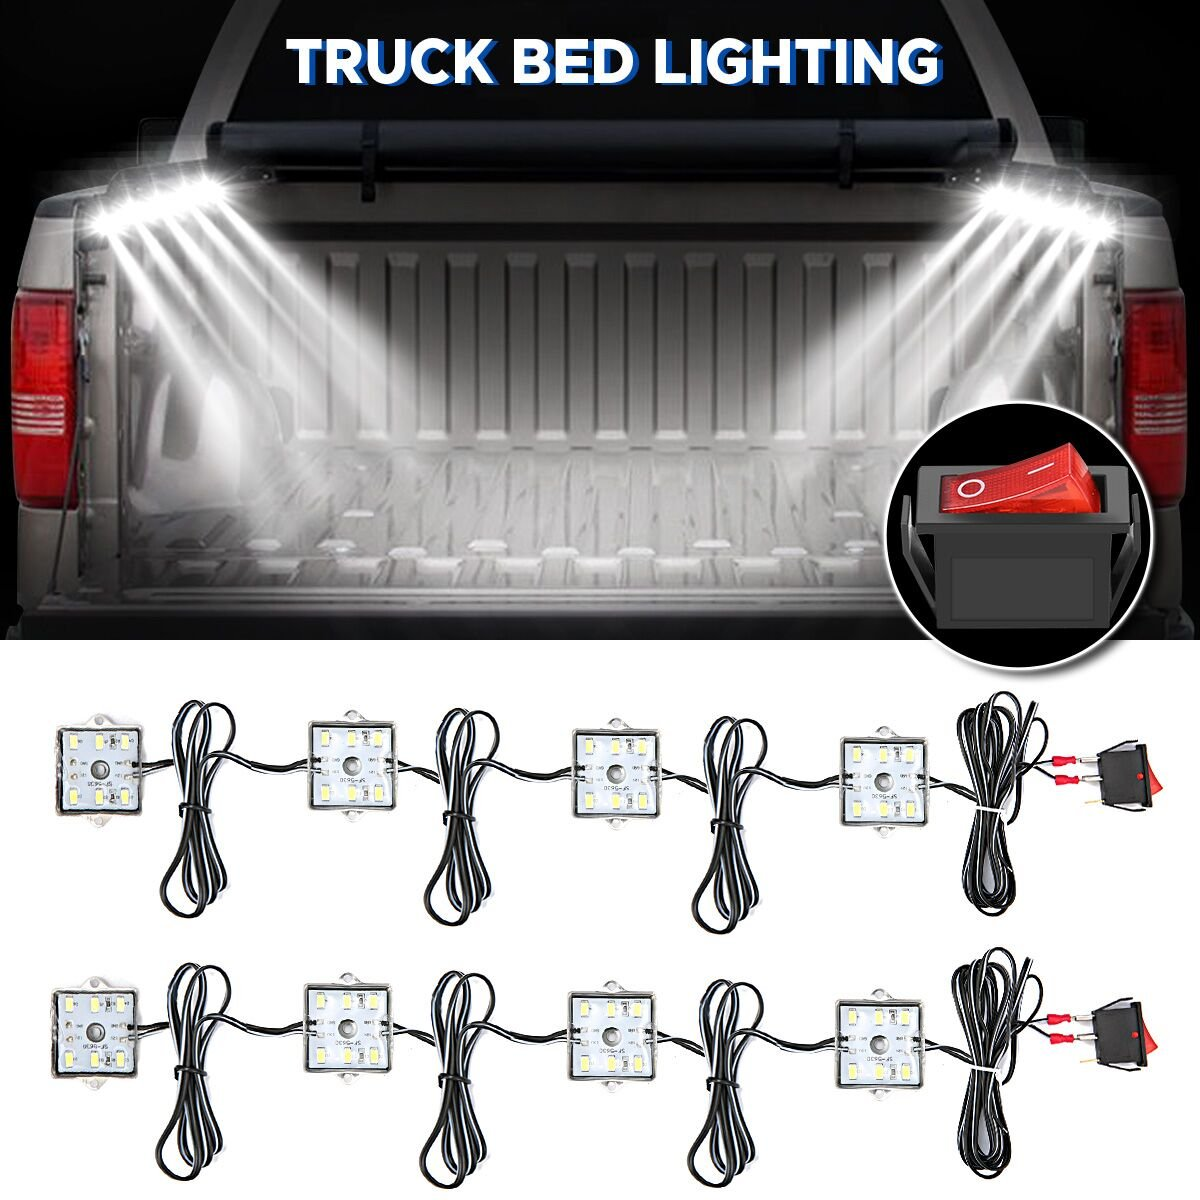 AUDEW 8Pcs Truck Bed Lights,Super Bright LED Lights with On/Off Switch,Fits for Truck,RV,SUV,Boats,Ice House,IP 67 Waterproof,White